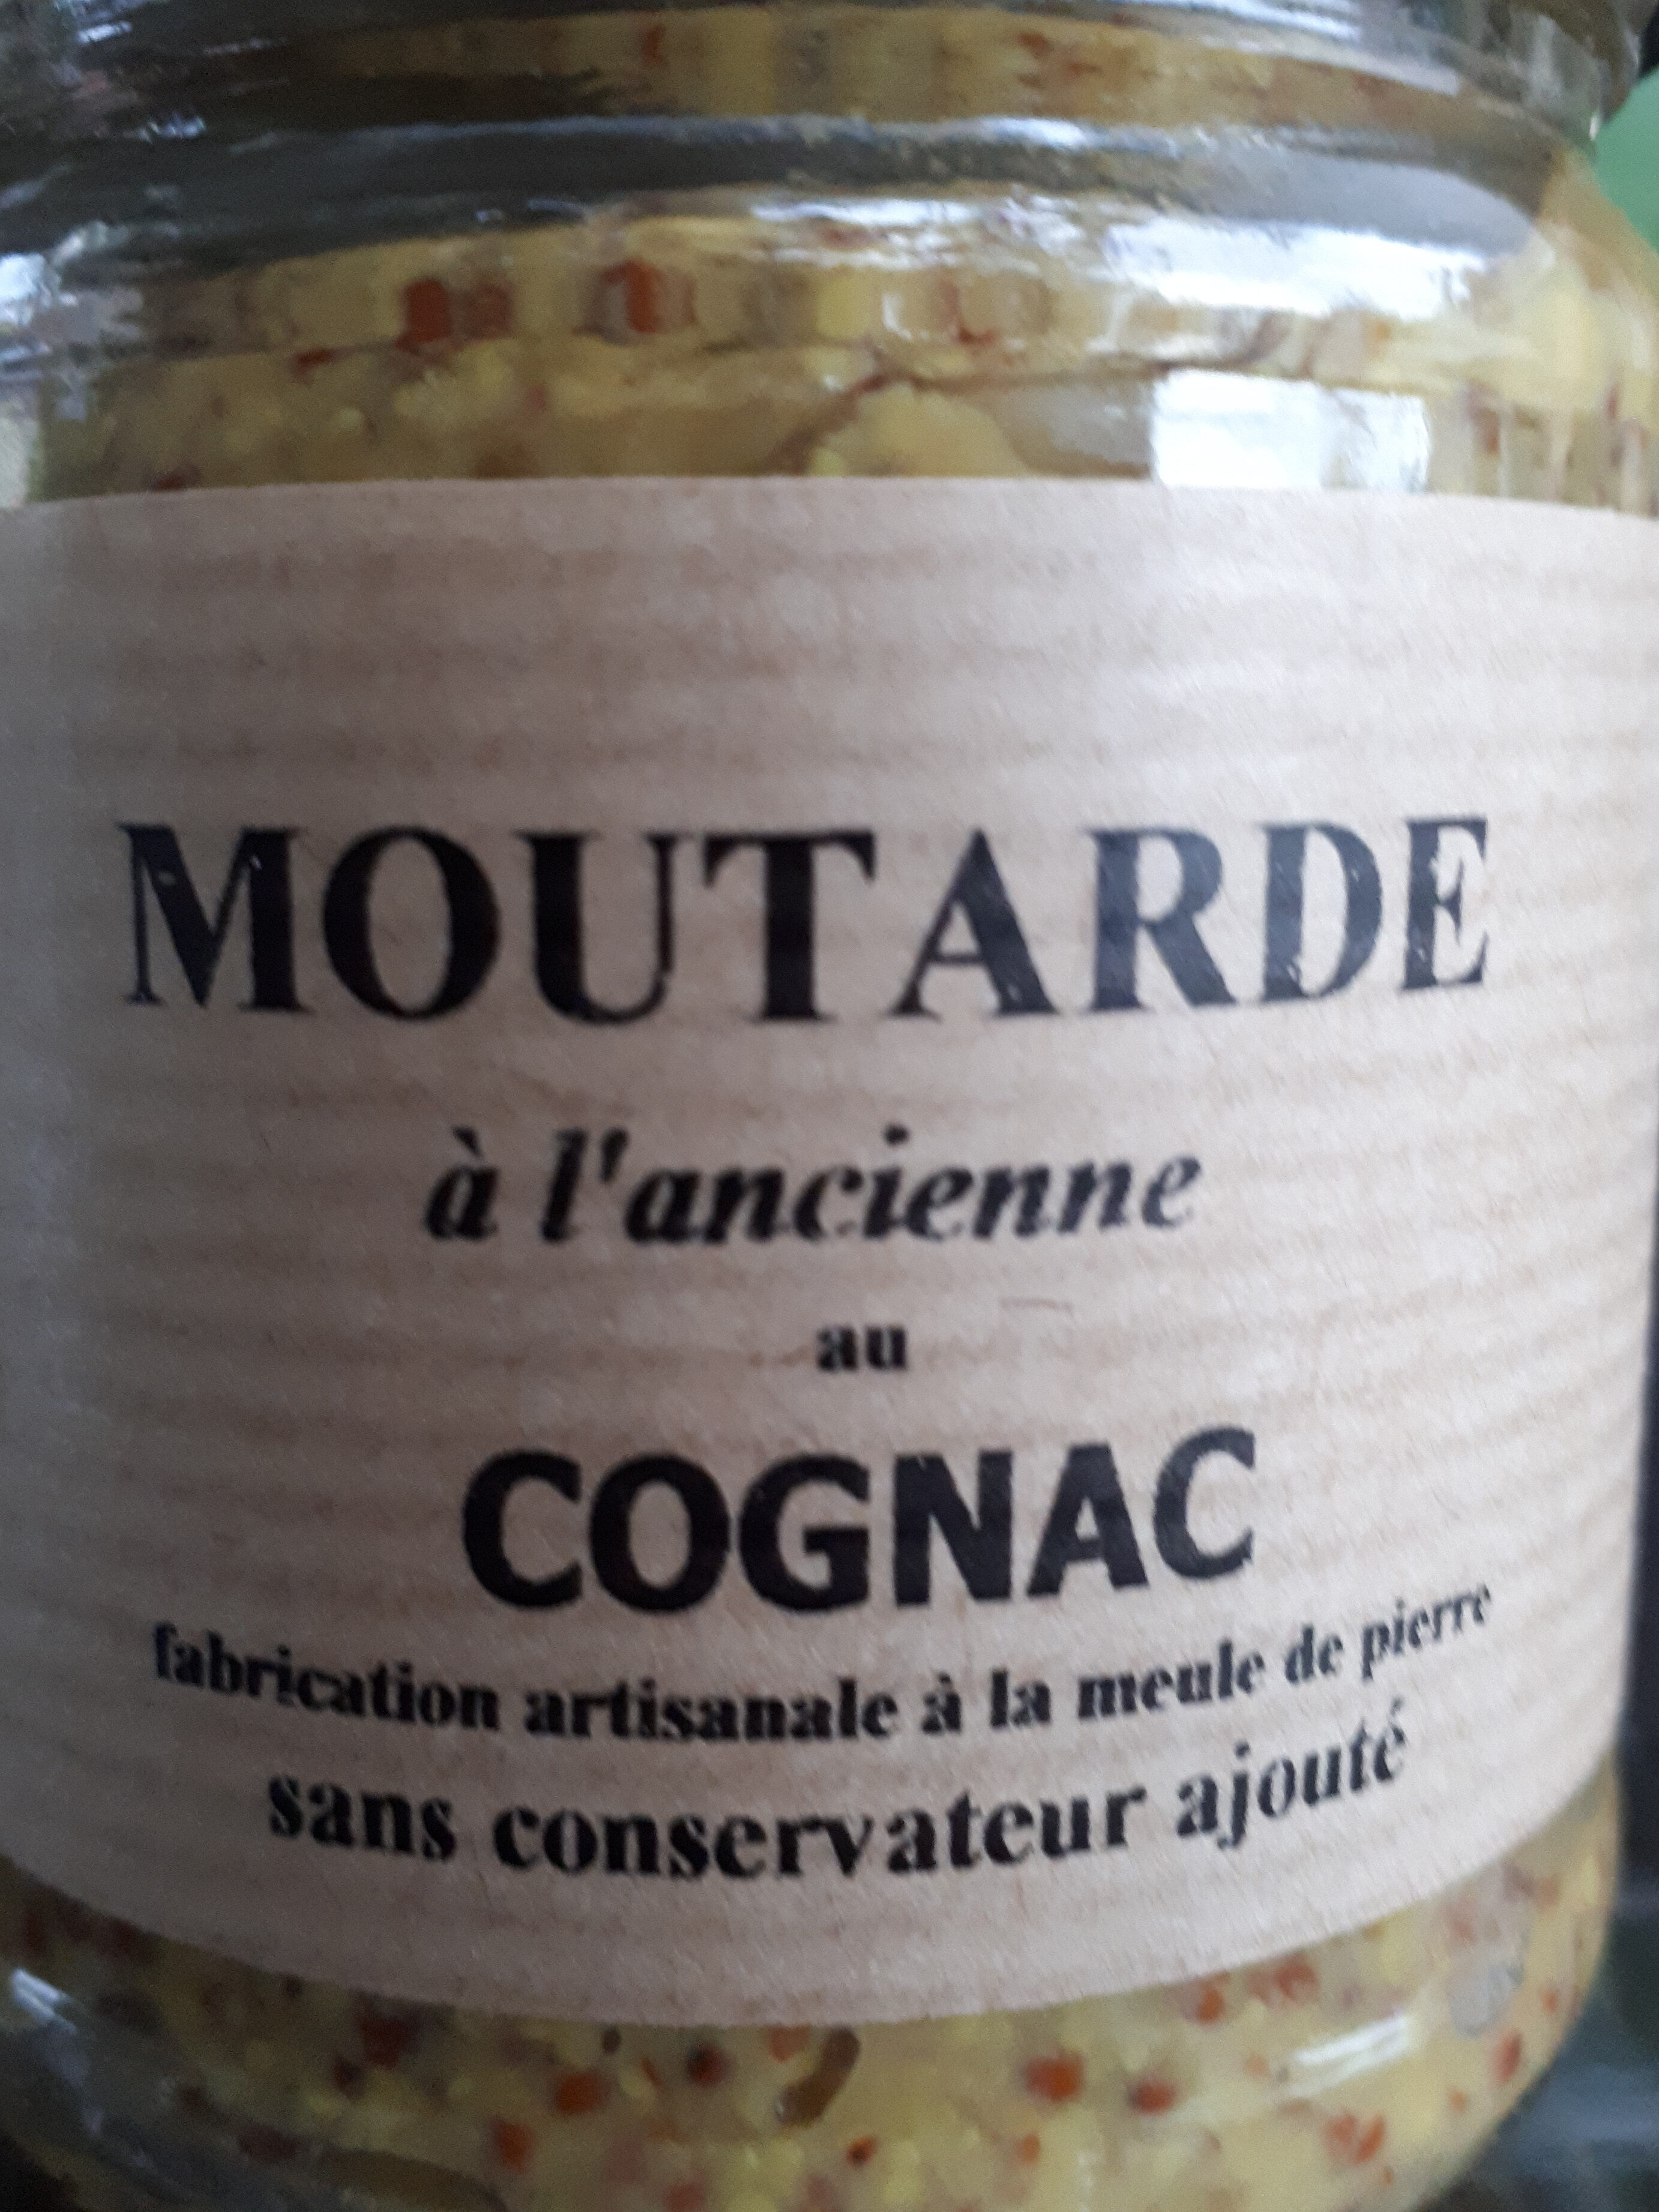 moutarde à l'ancienne au cognac - Product - fr